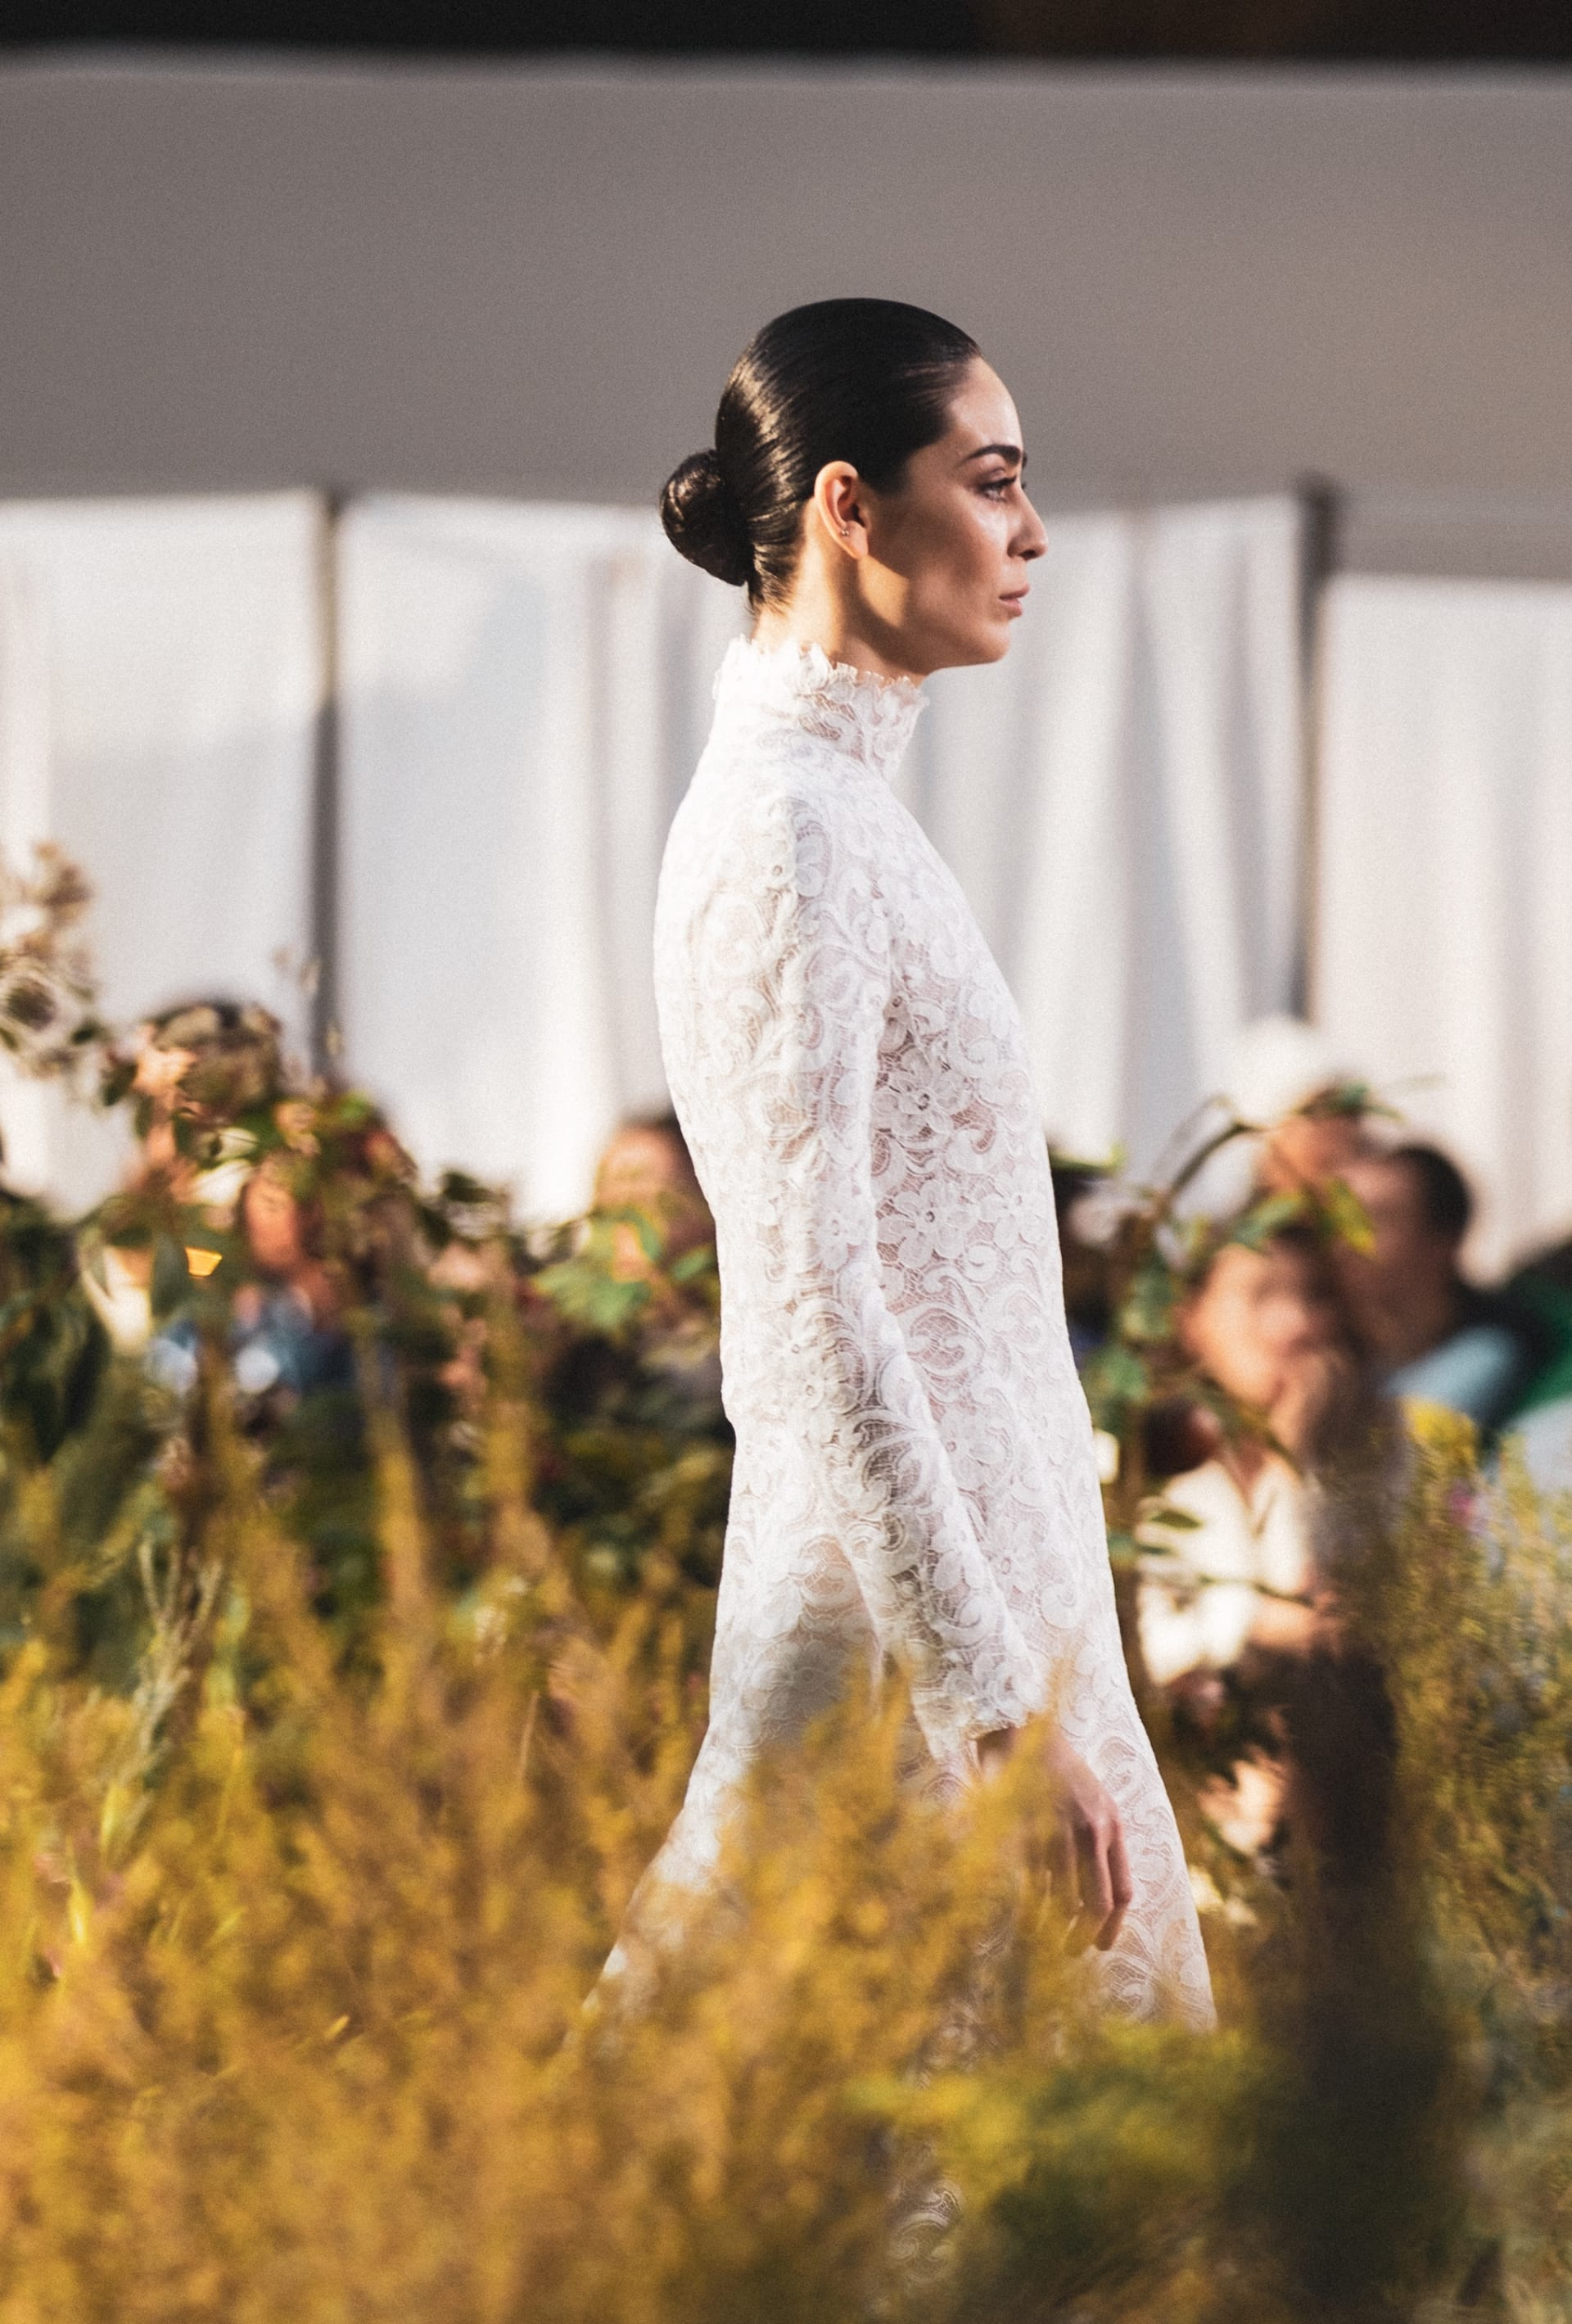 View 3 - Look 36 - Spring-Summer 2020 Haute Couture - see full sized version